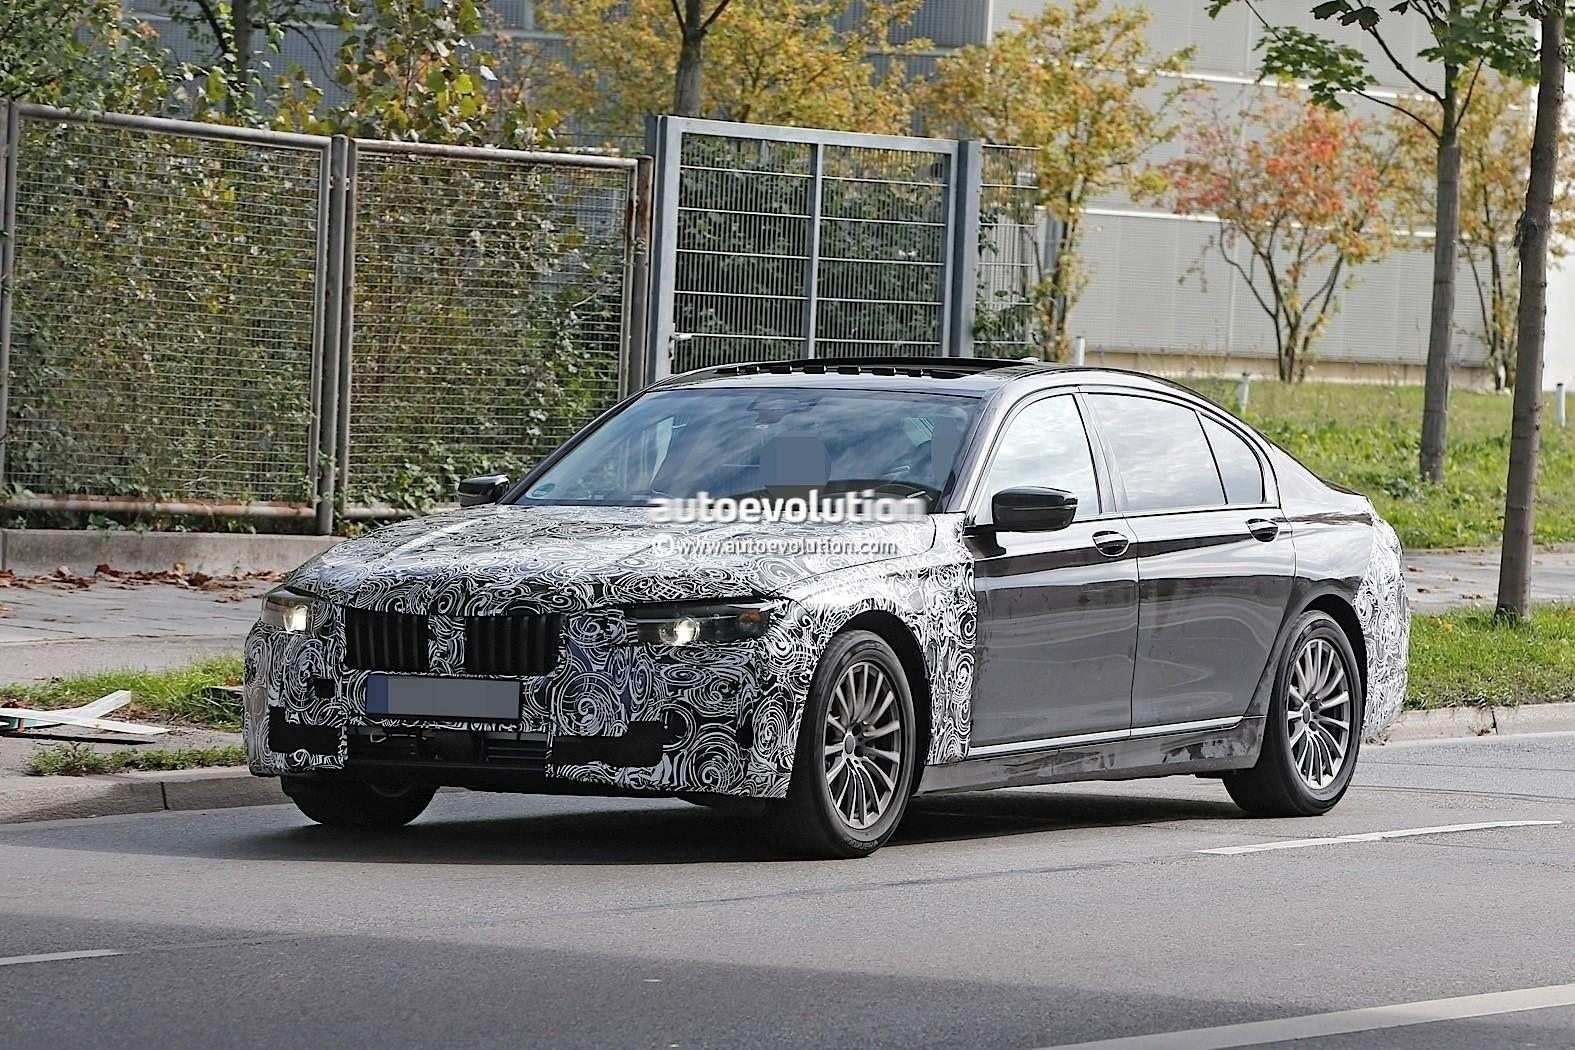 55 New 2019 Bmw 7 Series Perfection New Price Design And Review